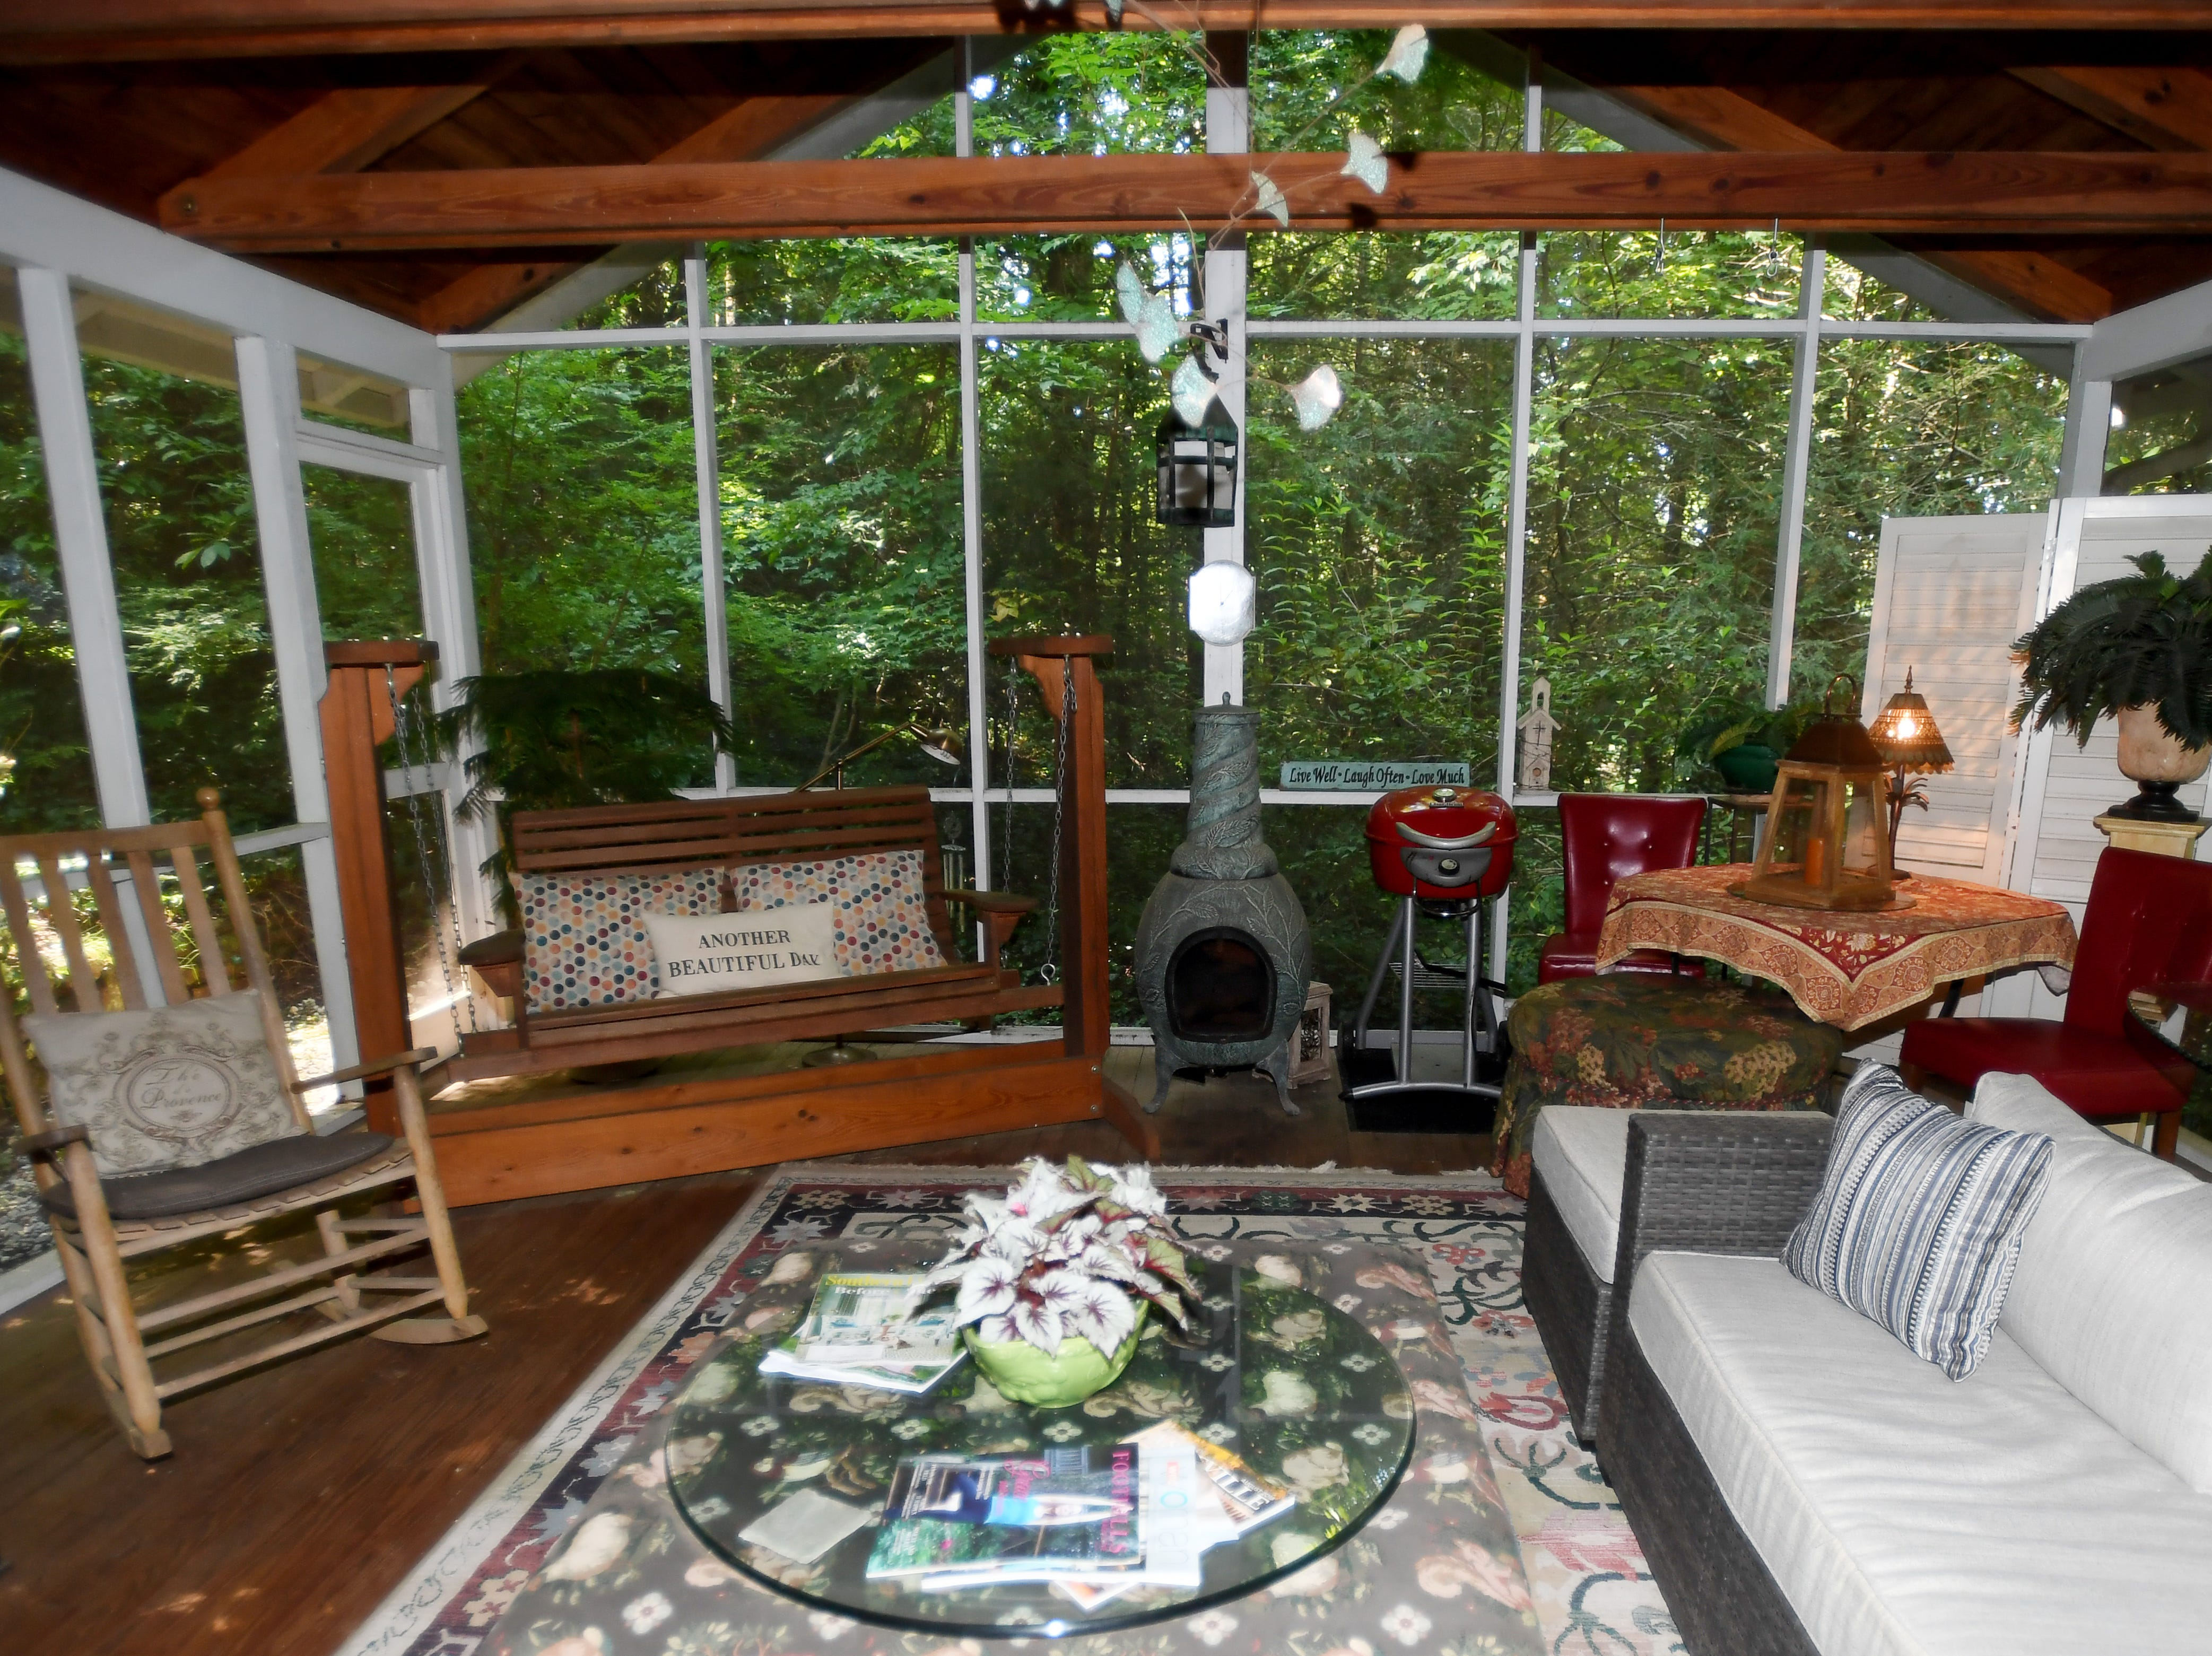 The sunroom in Rhonda Corley's cabin in Saluda.